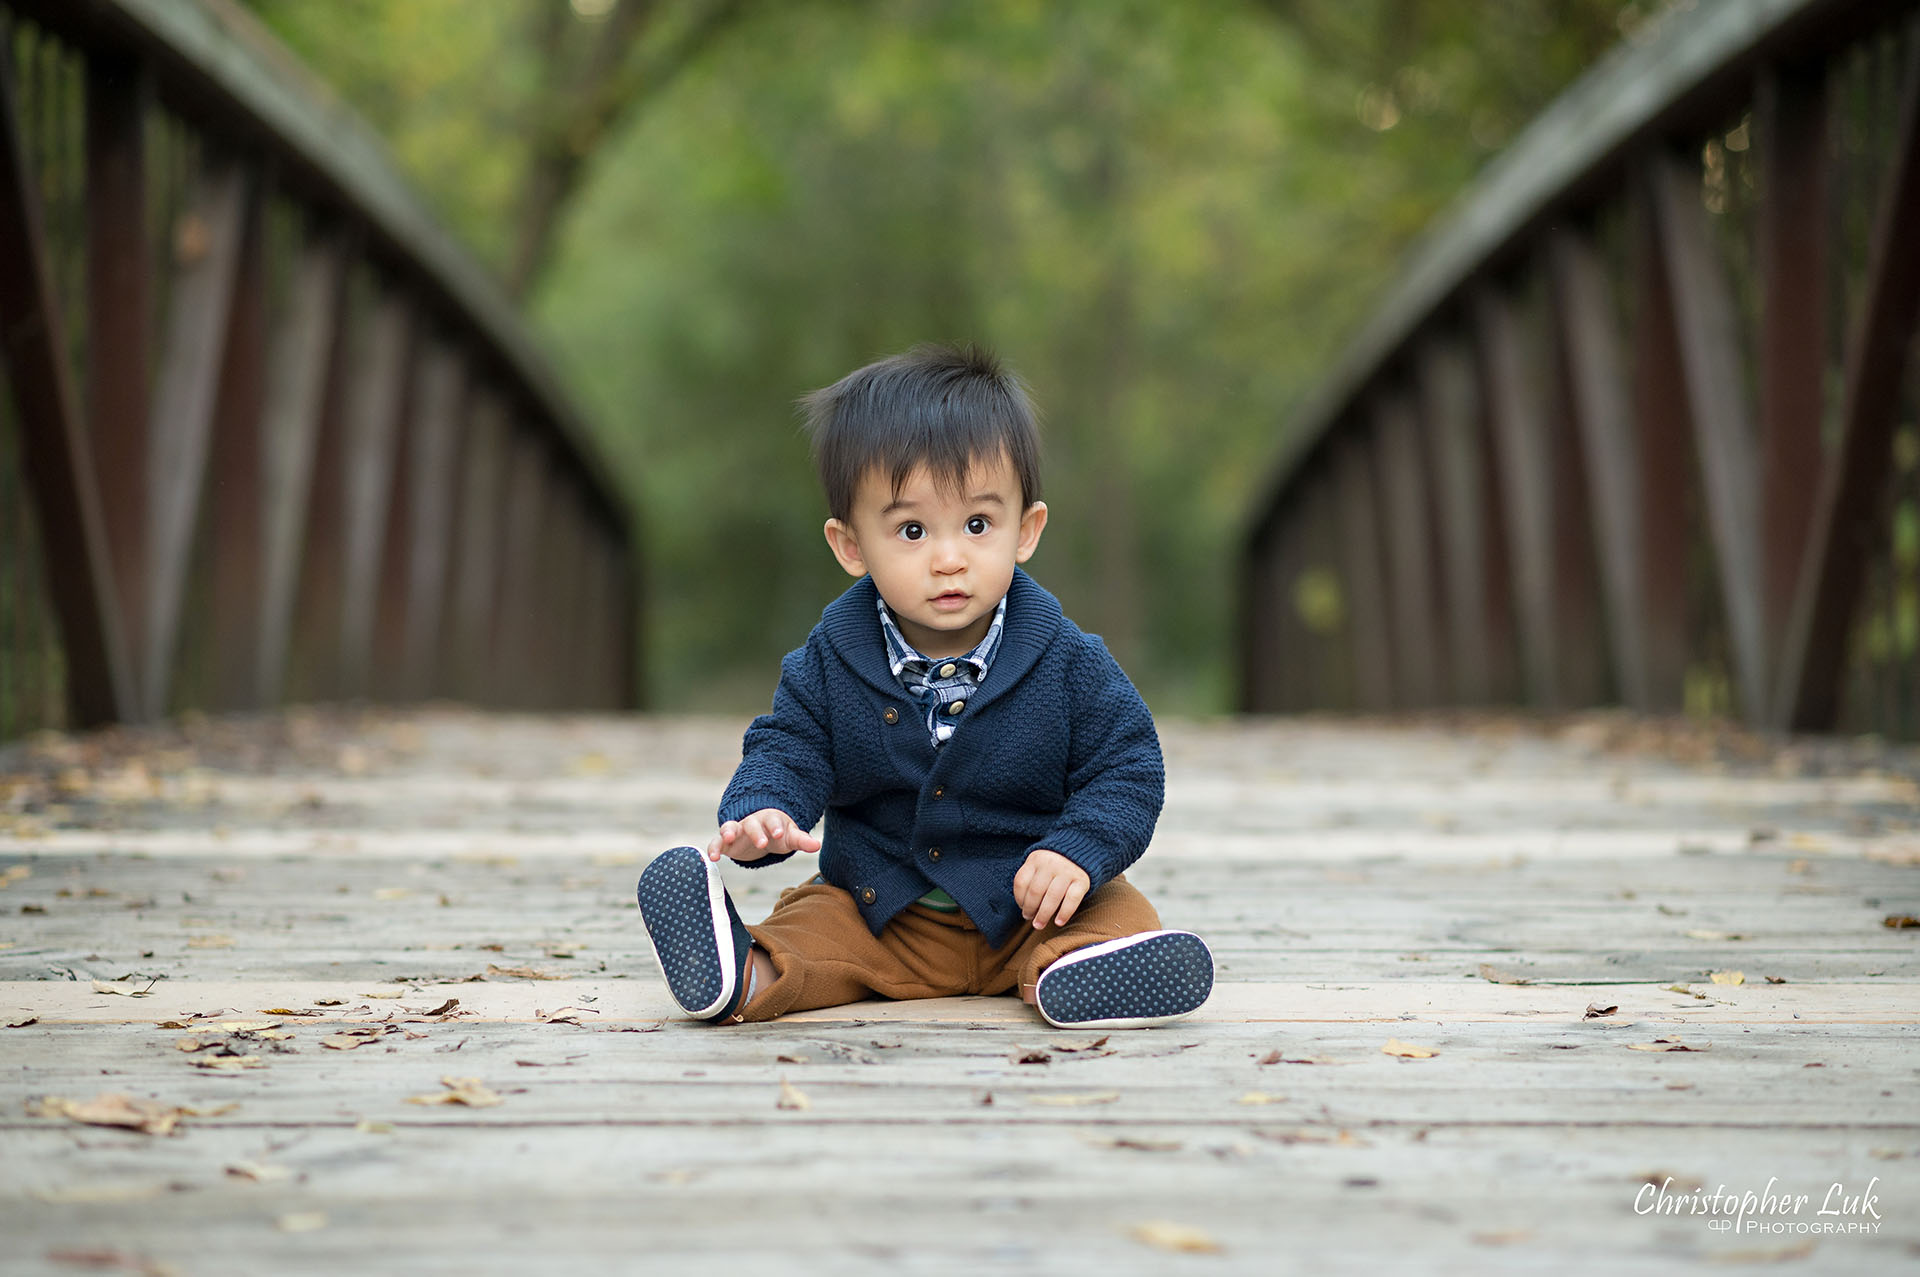 Christopher Luk Family Photographer Toronto Markham Unionville Autumn Fall Leaves Natural Candid Photojournalistic Son Brother Boy Crawling Baby Sitting Bridge